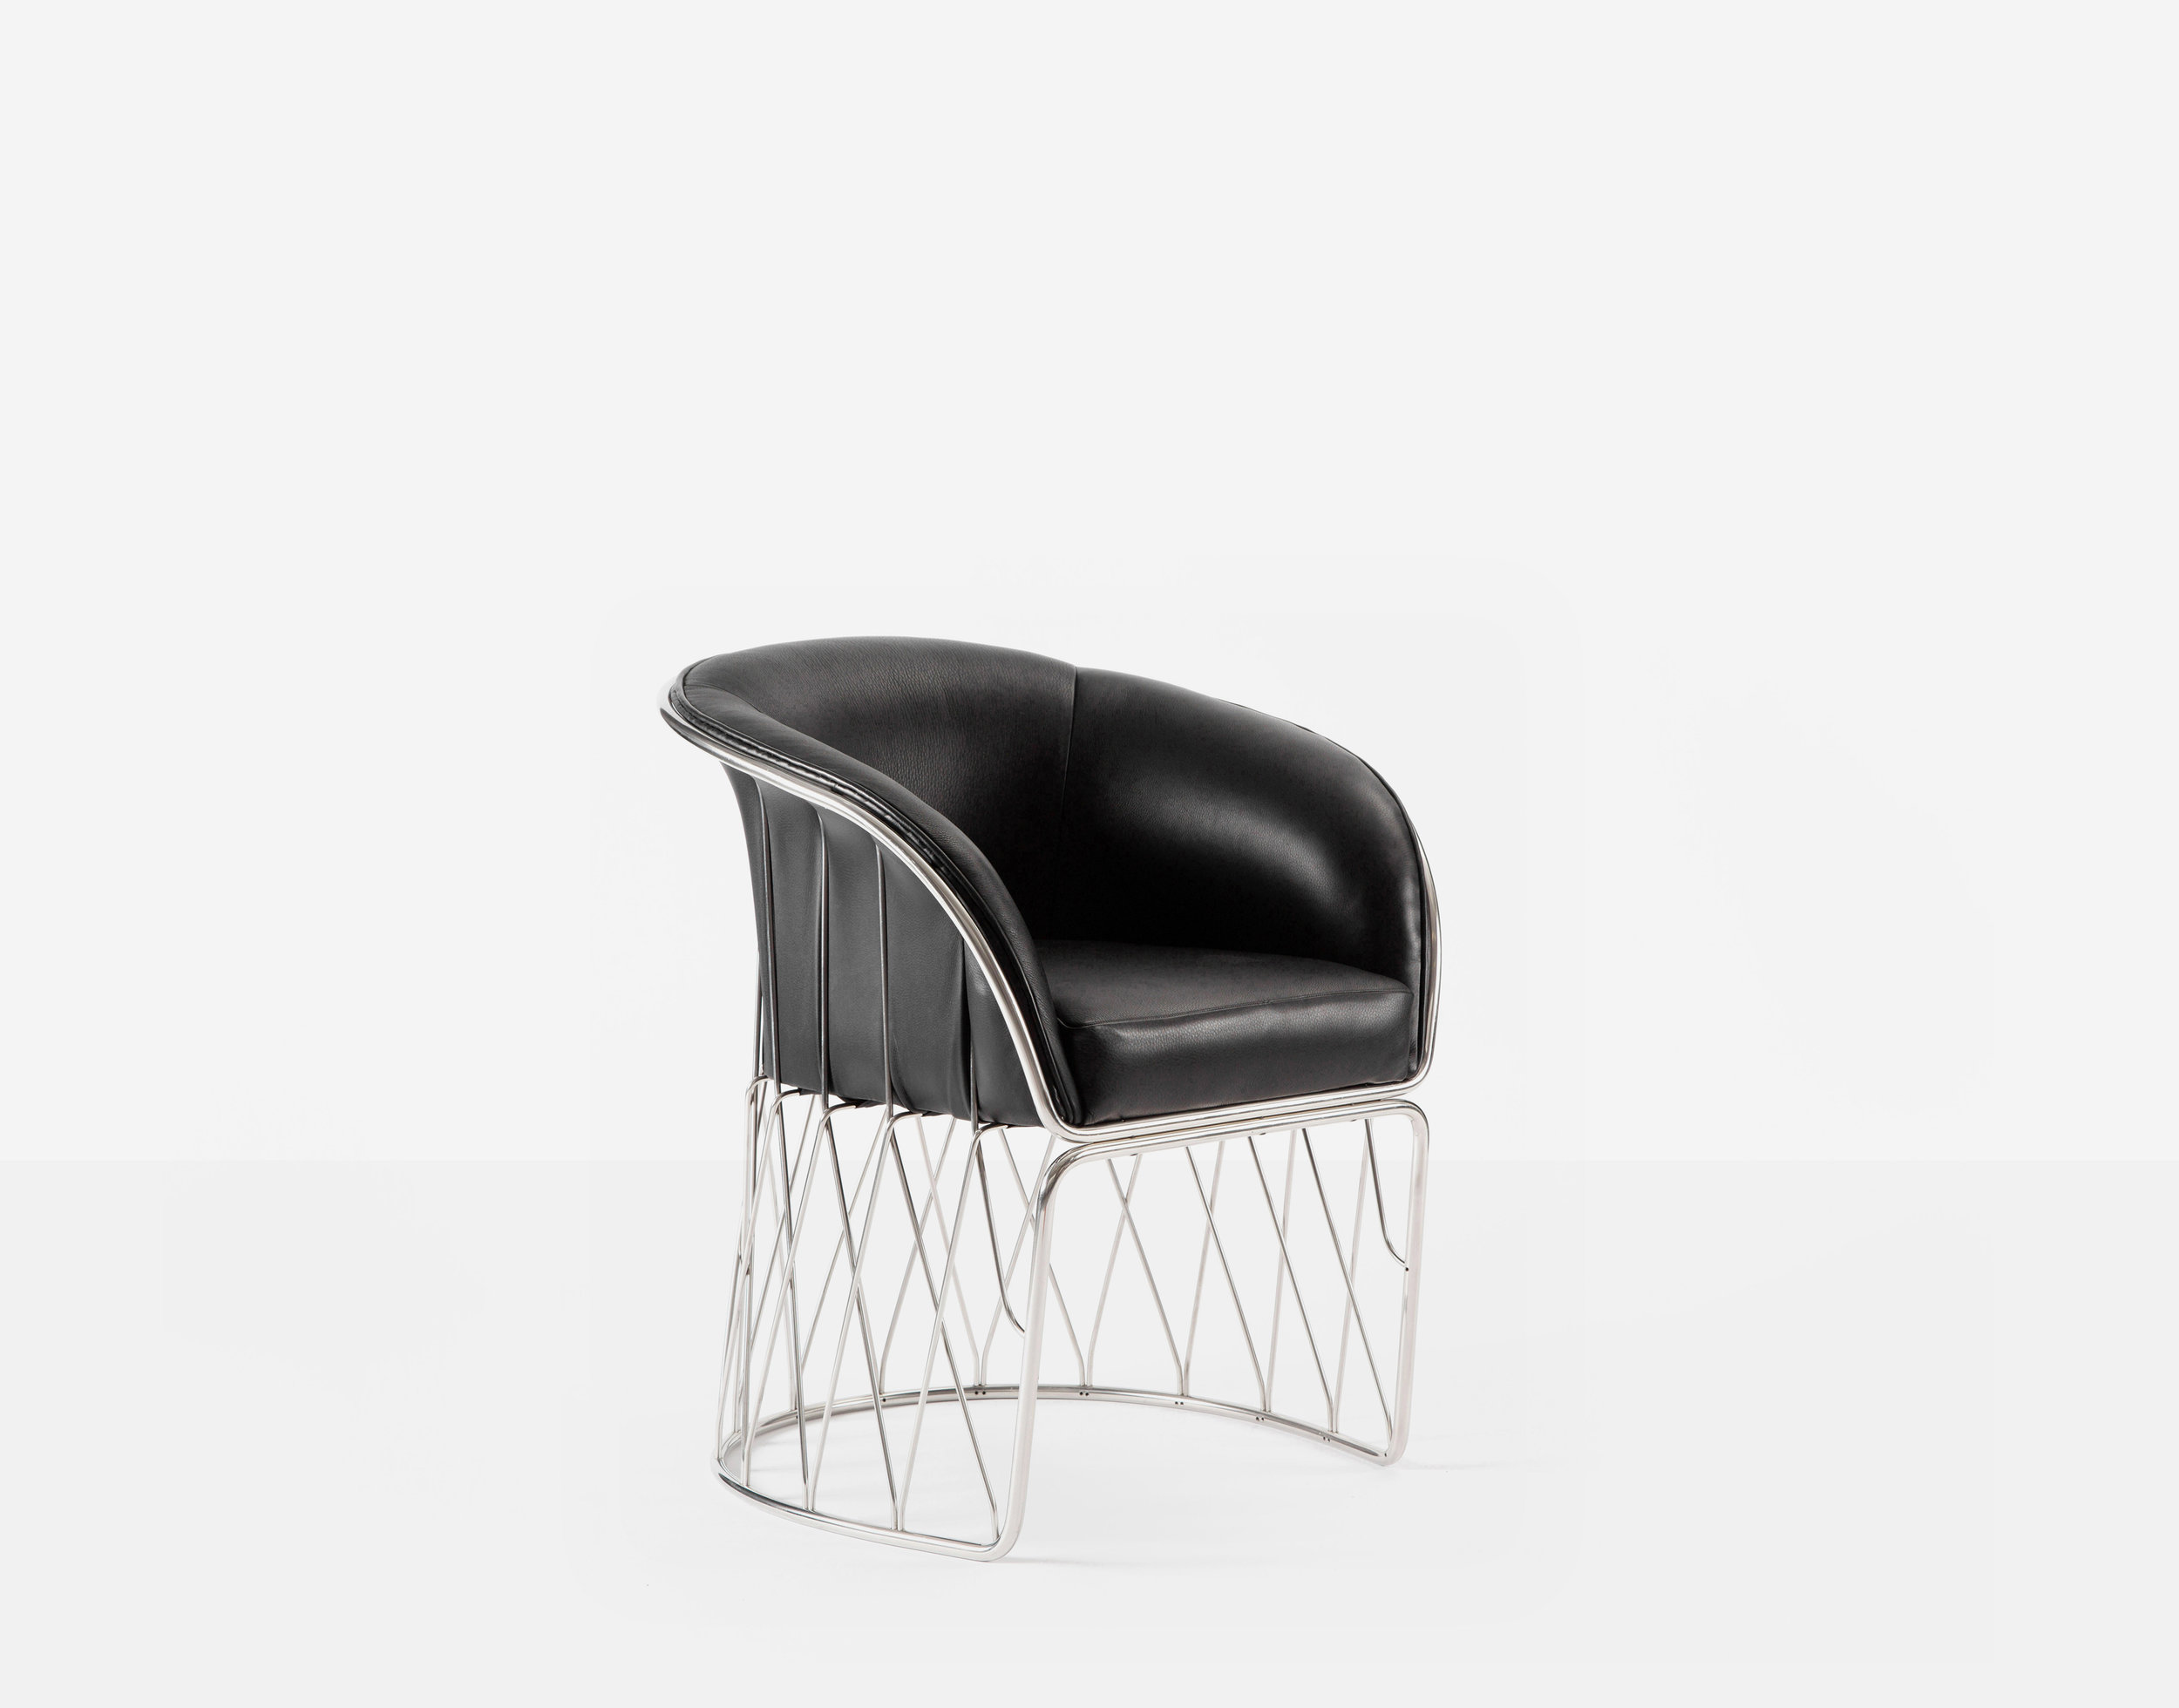 Luteca_PRV_Equipal-Chair_Black-Leather-Chrome_FP-W.jpg